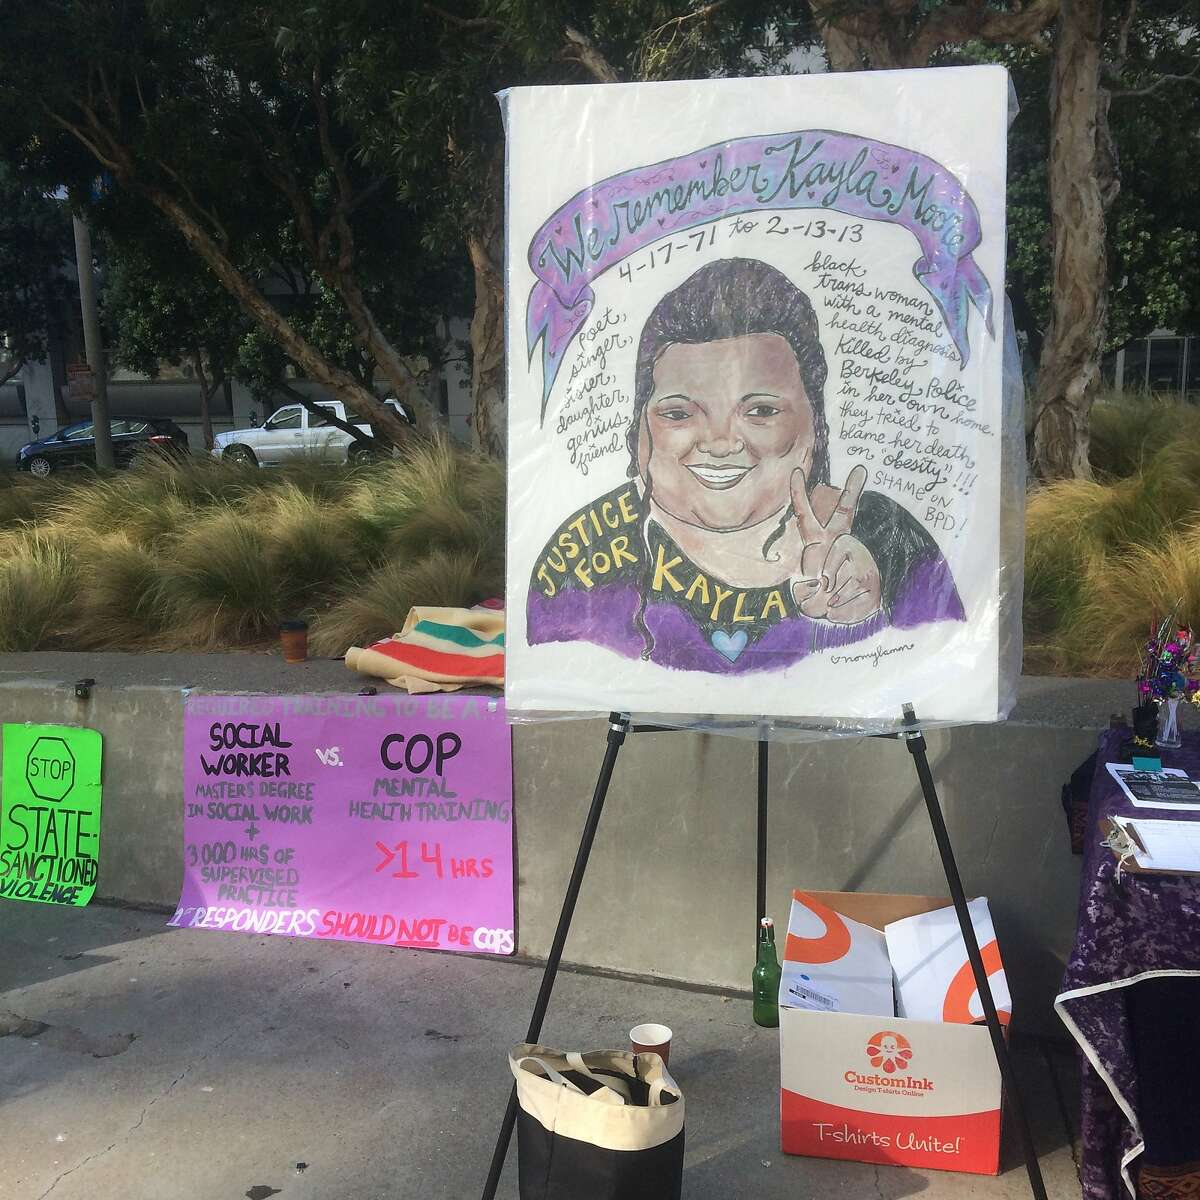 A memorial to Kayla Moore, who died during an encounter with Berkeley police in 2013, was set up by supporters of the Moore family outside the Phillip Burton Federal Building and US Courthouse on Friday.